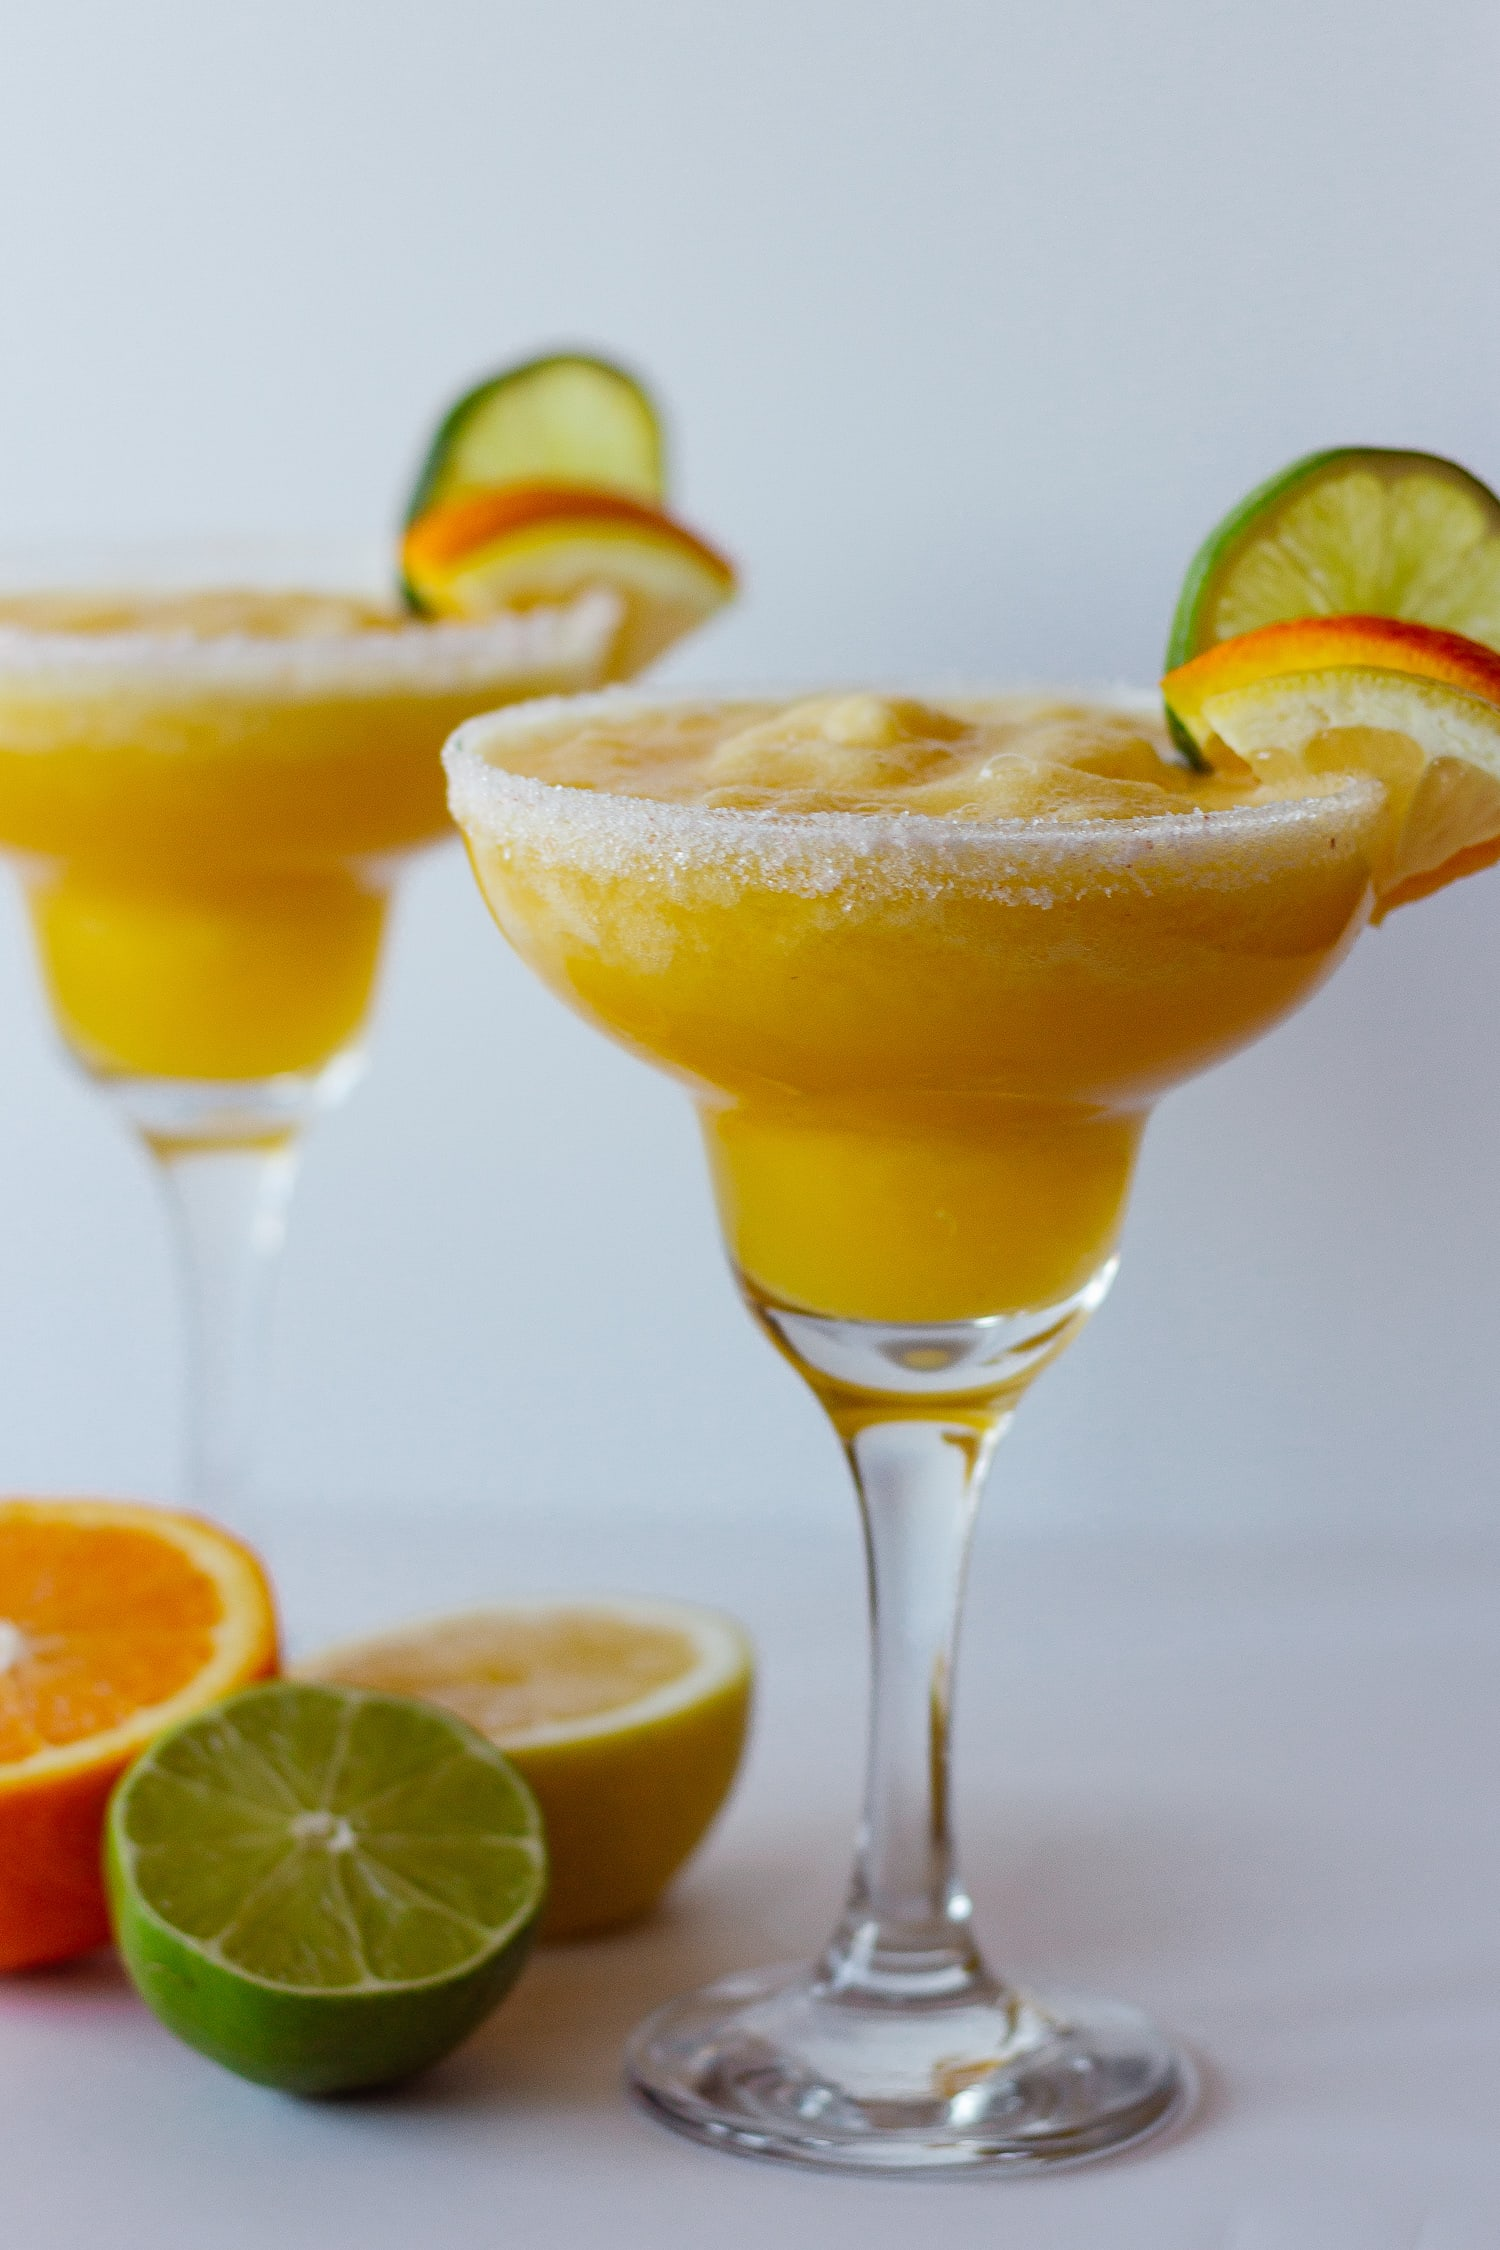 2 margarita glasses containing fresh citrus margarita